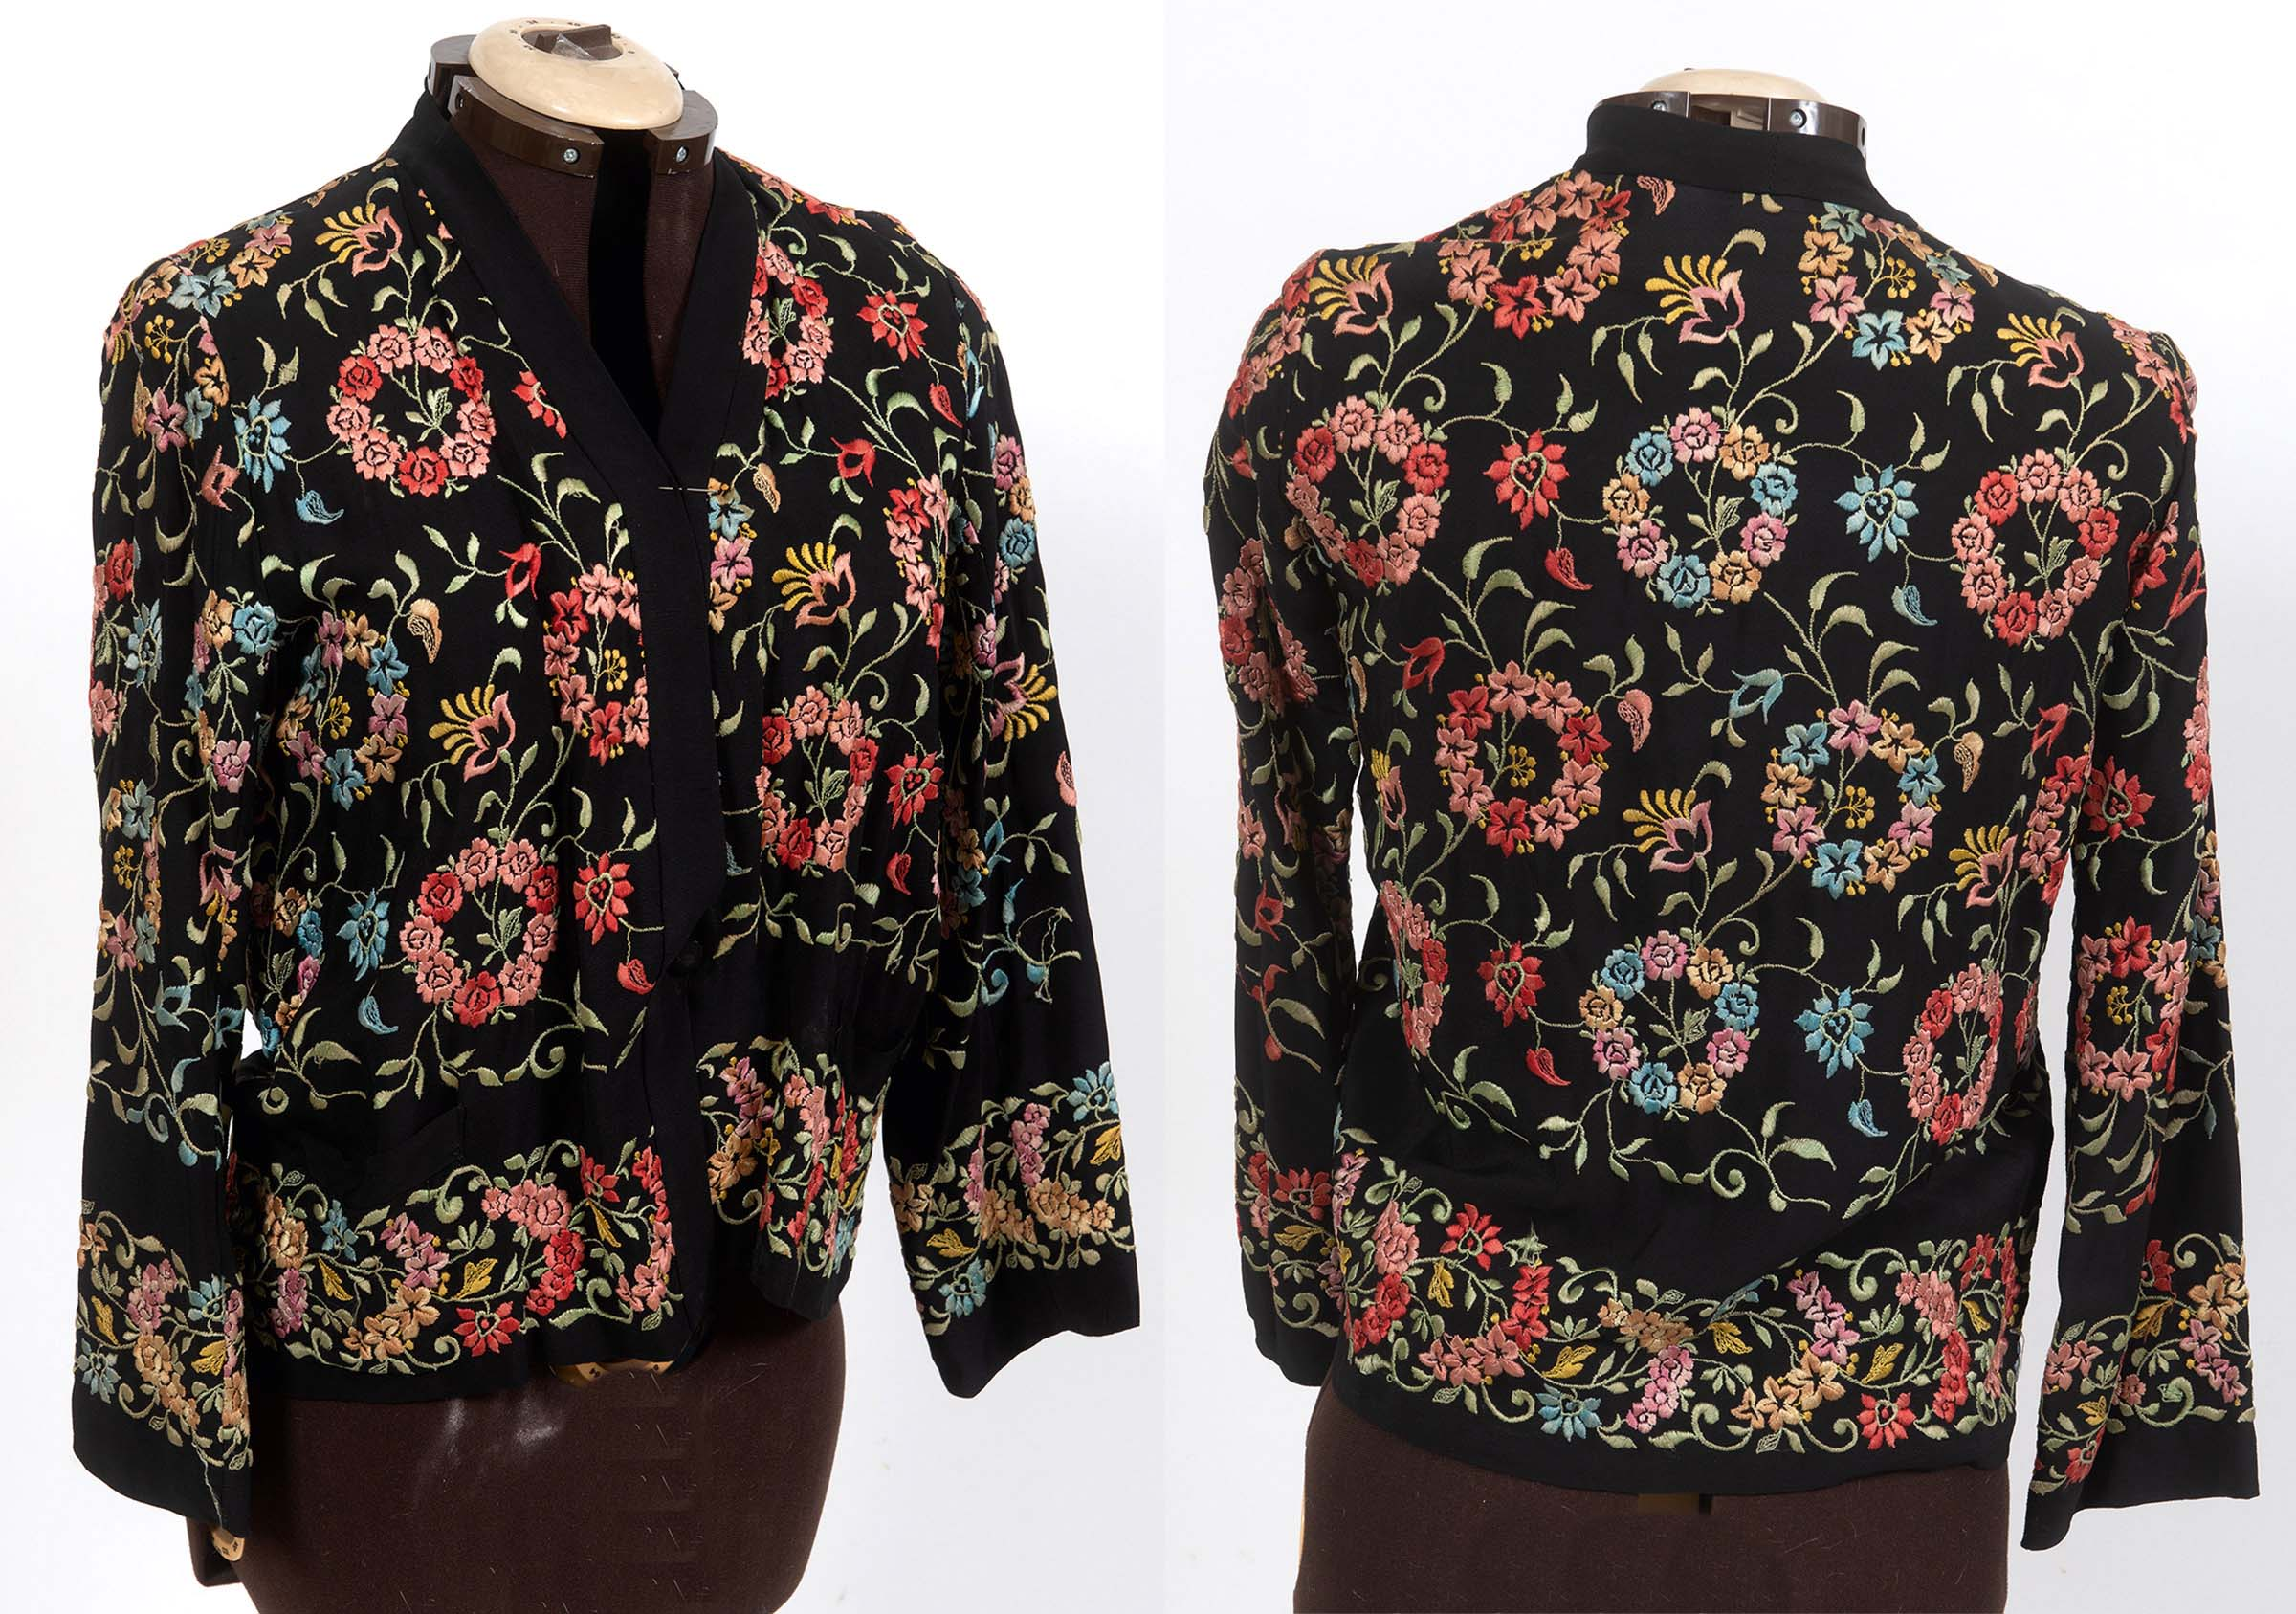 CHINESE FUR LINED EMBROIDERED COAT a fur lined coat adapted from a black silk Chinese robe, - Image 3 of 3